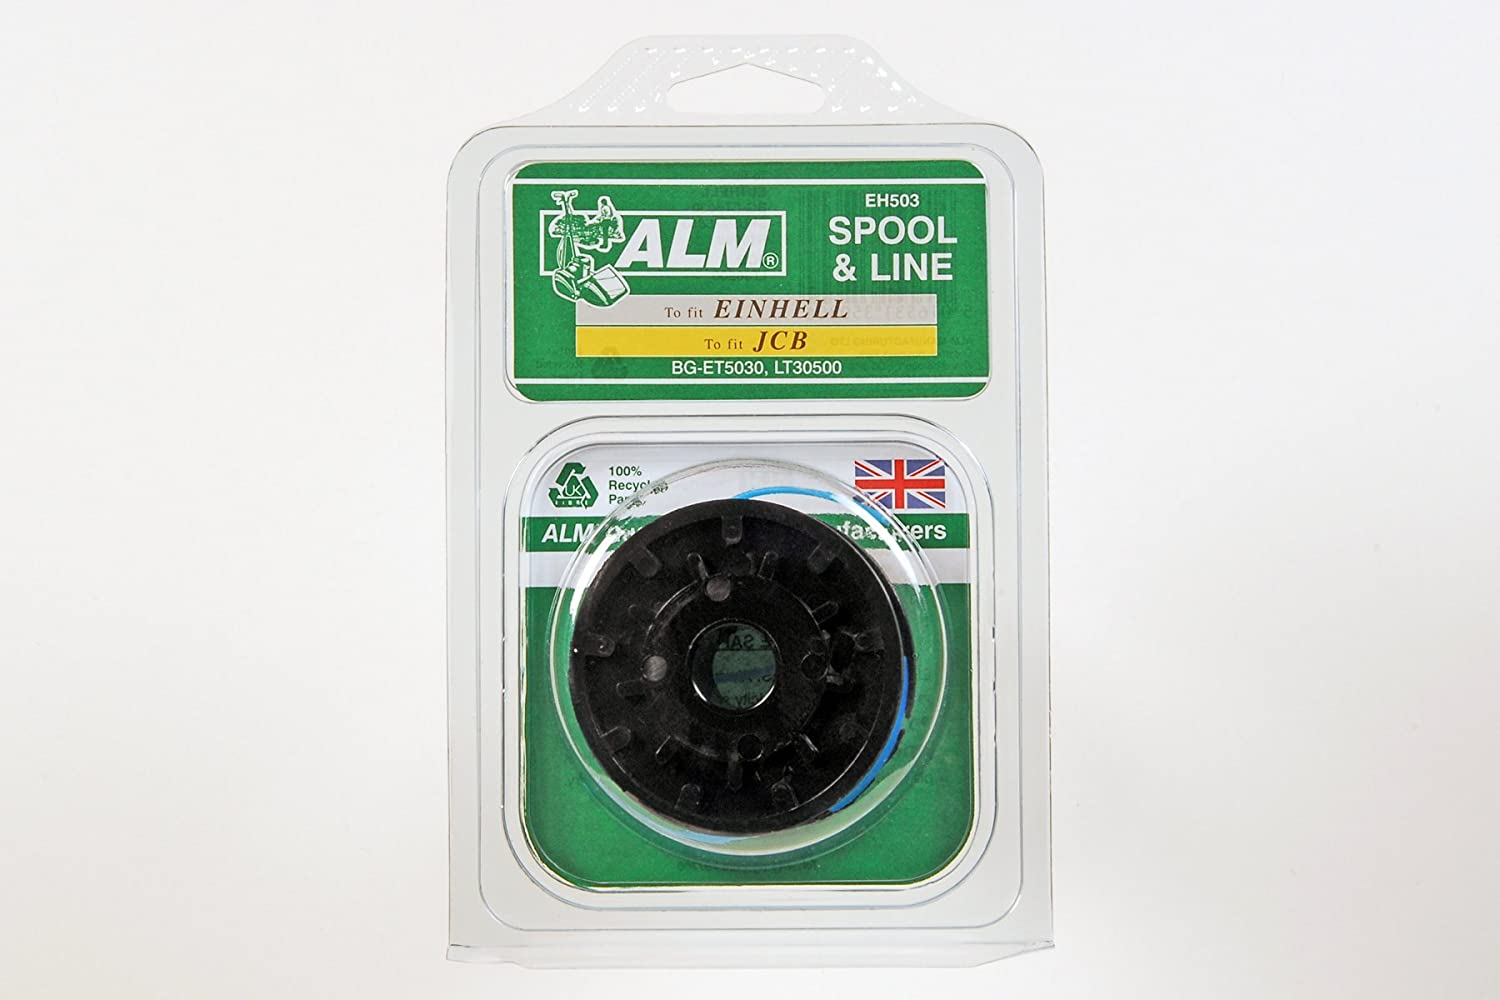 5 x ALM Spool & Line EH503 Fits Qualcast, MacAllister, Performance Power, JCB, Florabest, Einhell, Draper and Asda machines see description for specific models